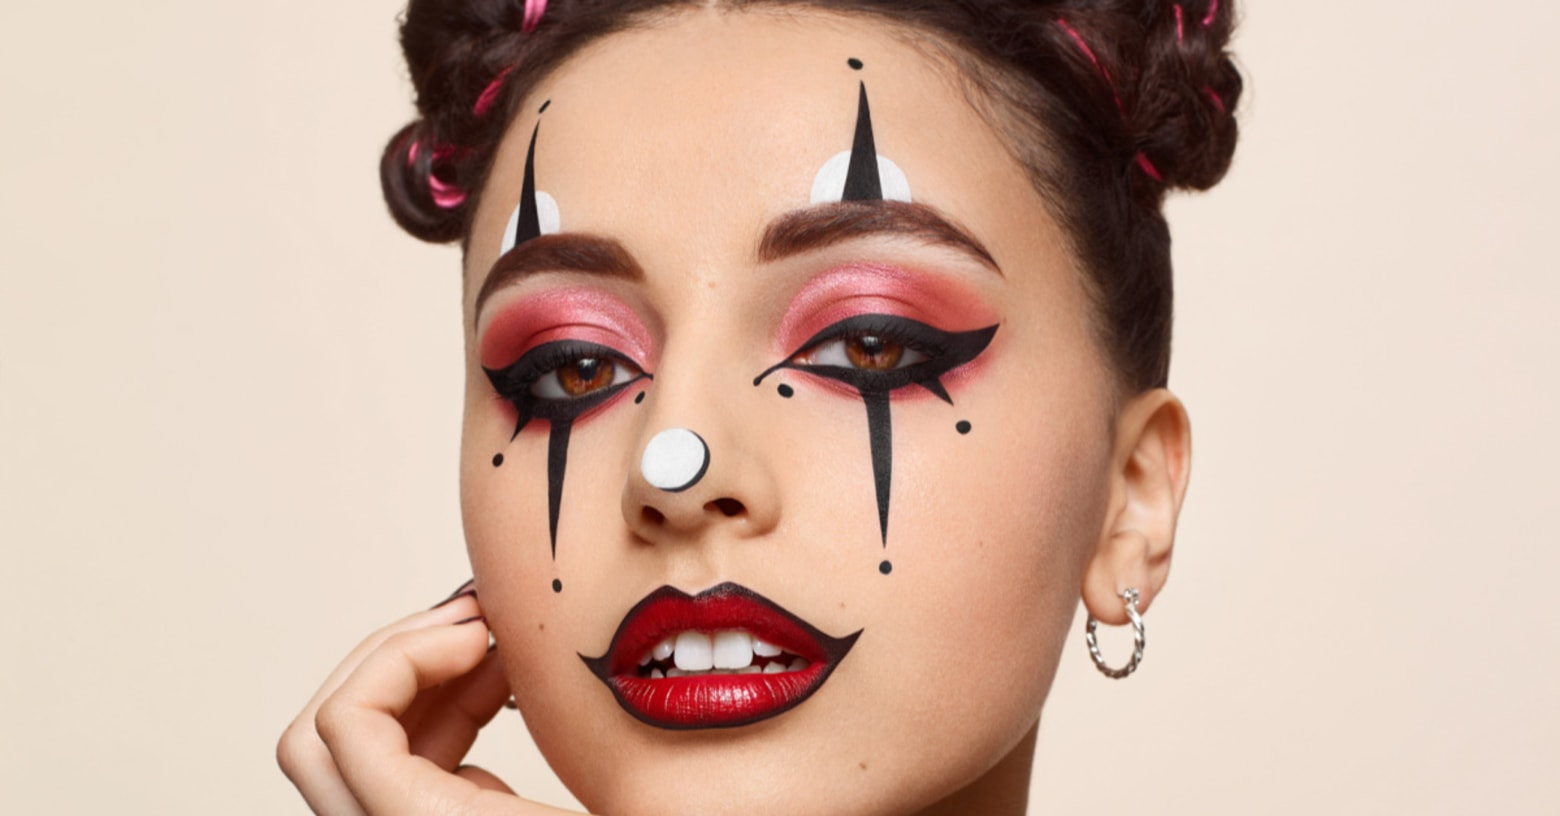 This Clown Makeup Is Scarily